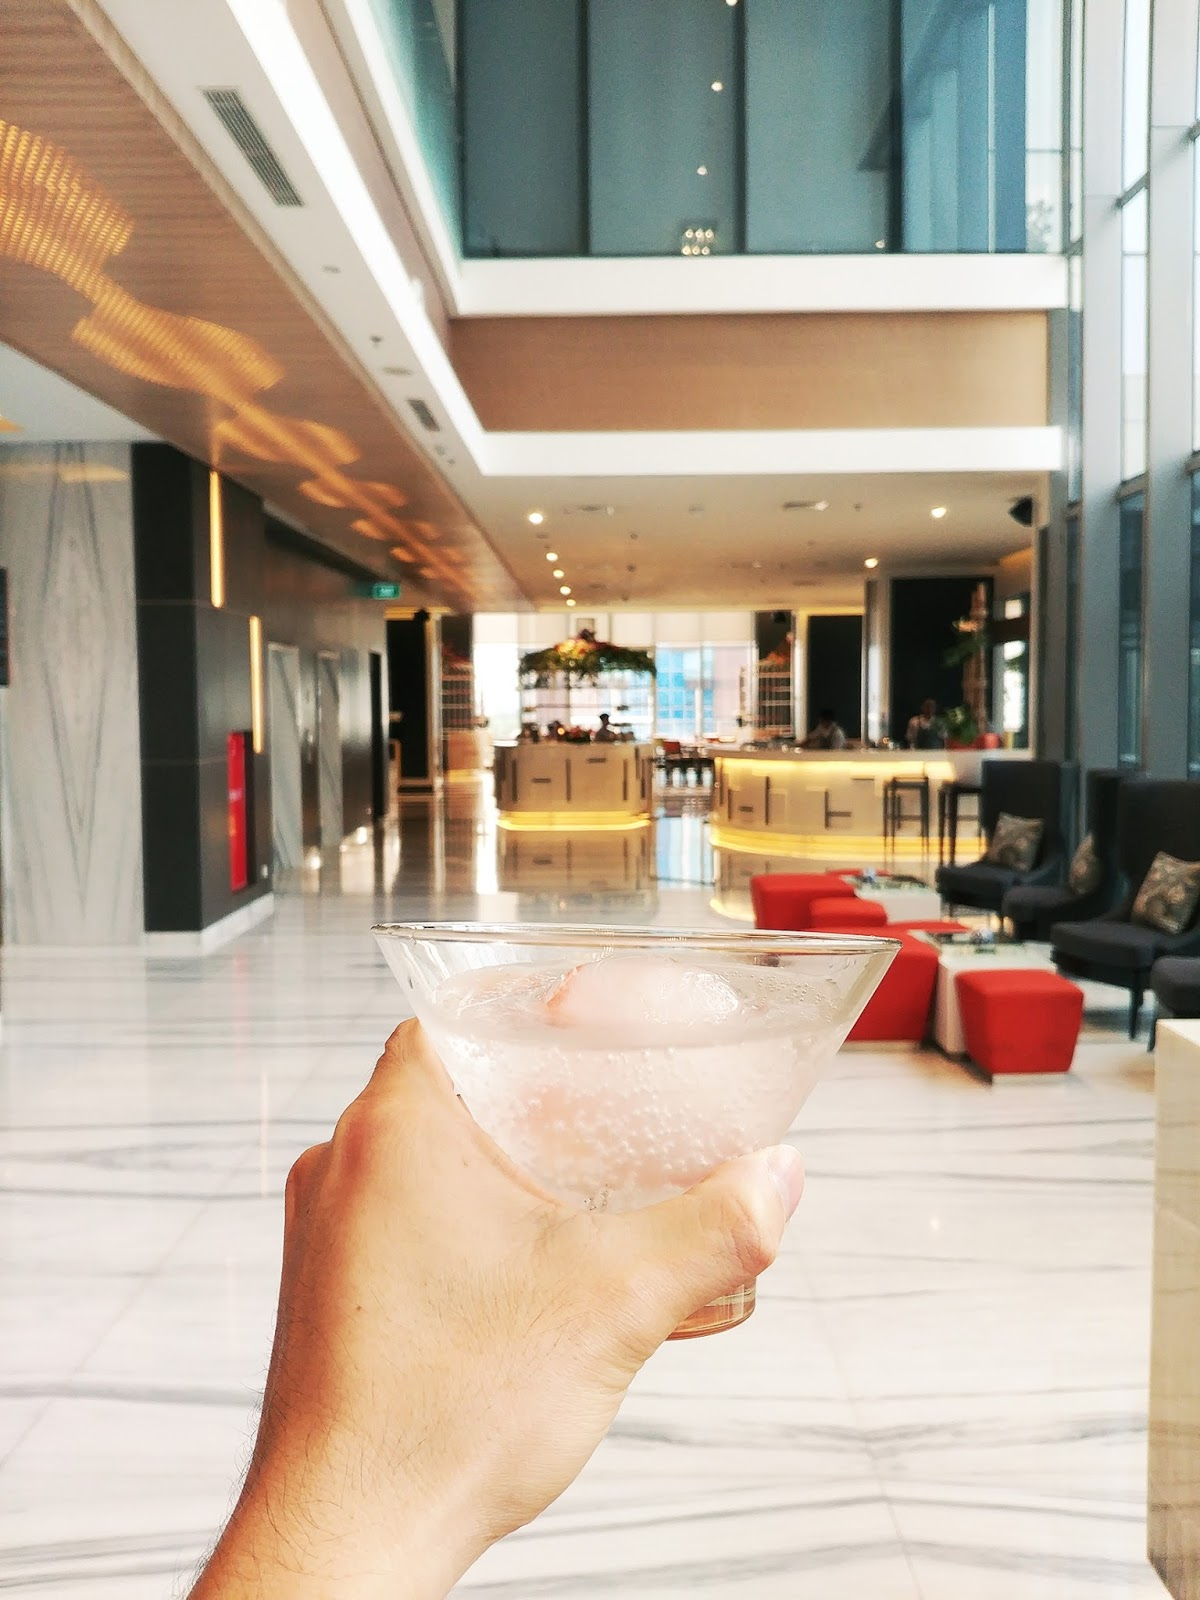 Jktdelicacy Com Staycation Experience At Suite Room Of Harris Vertu Hotel